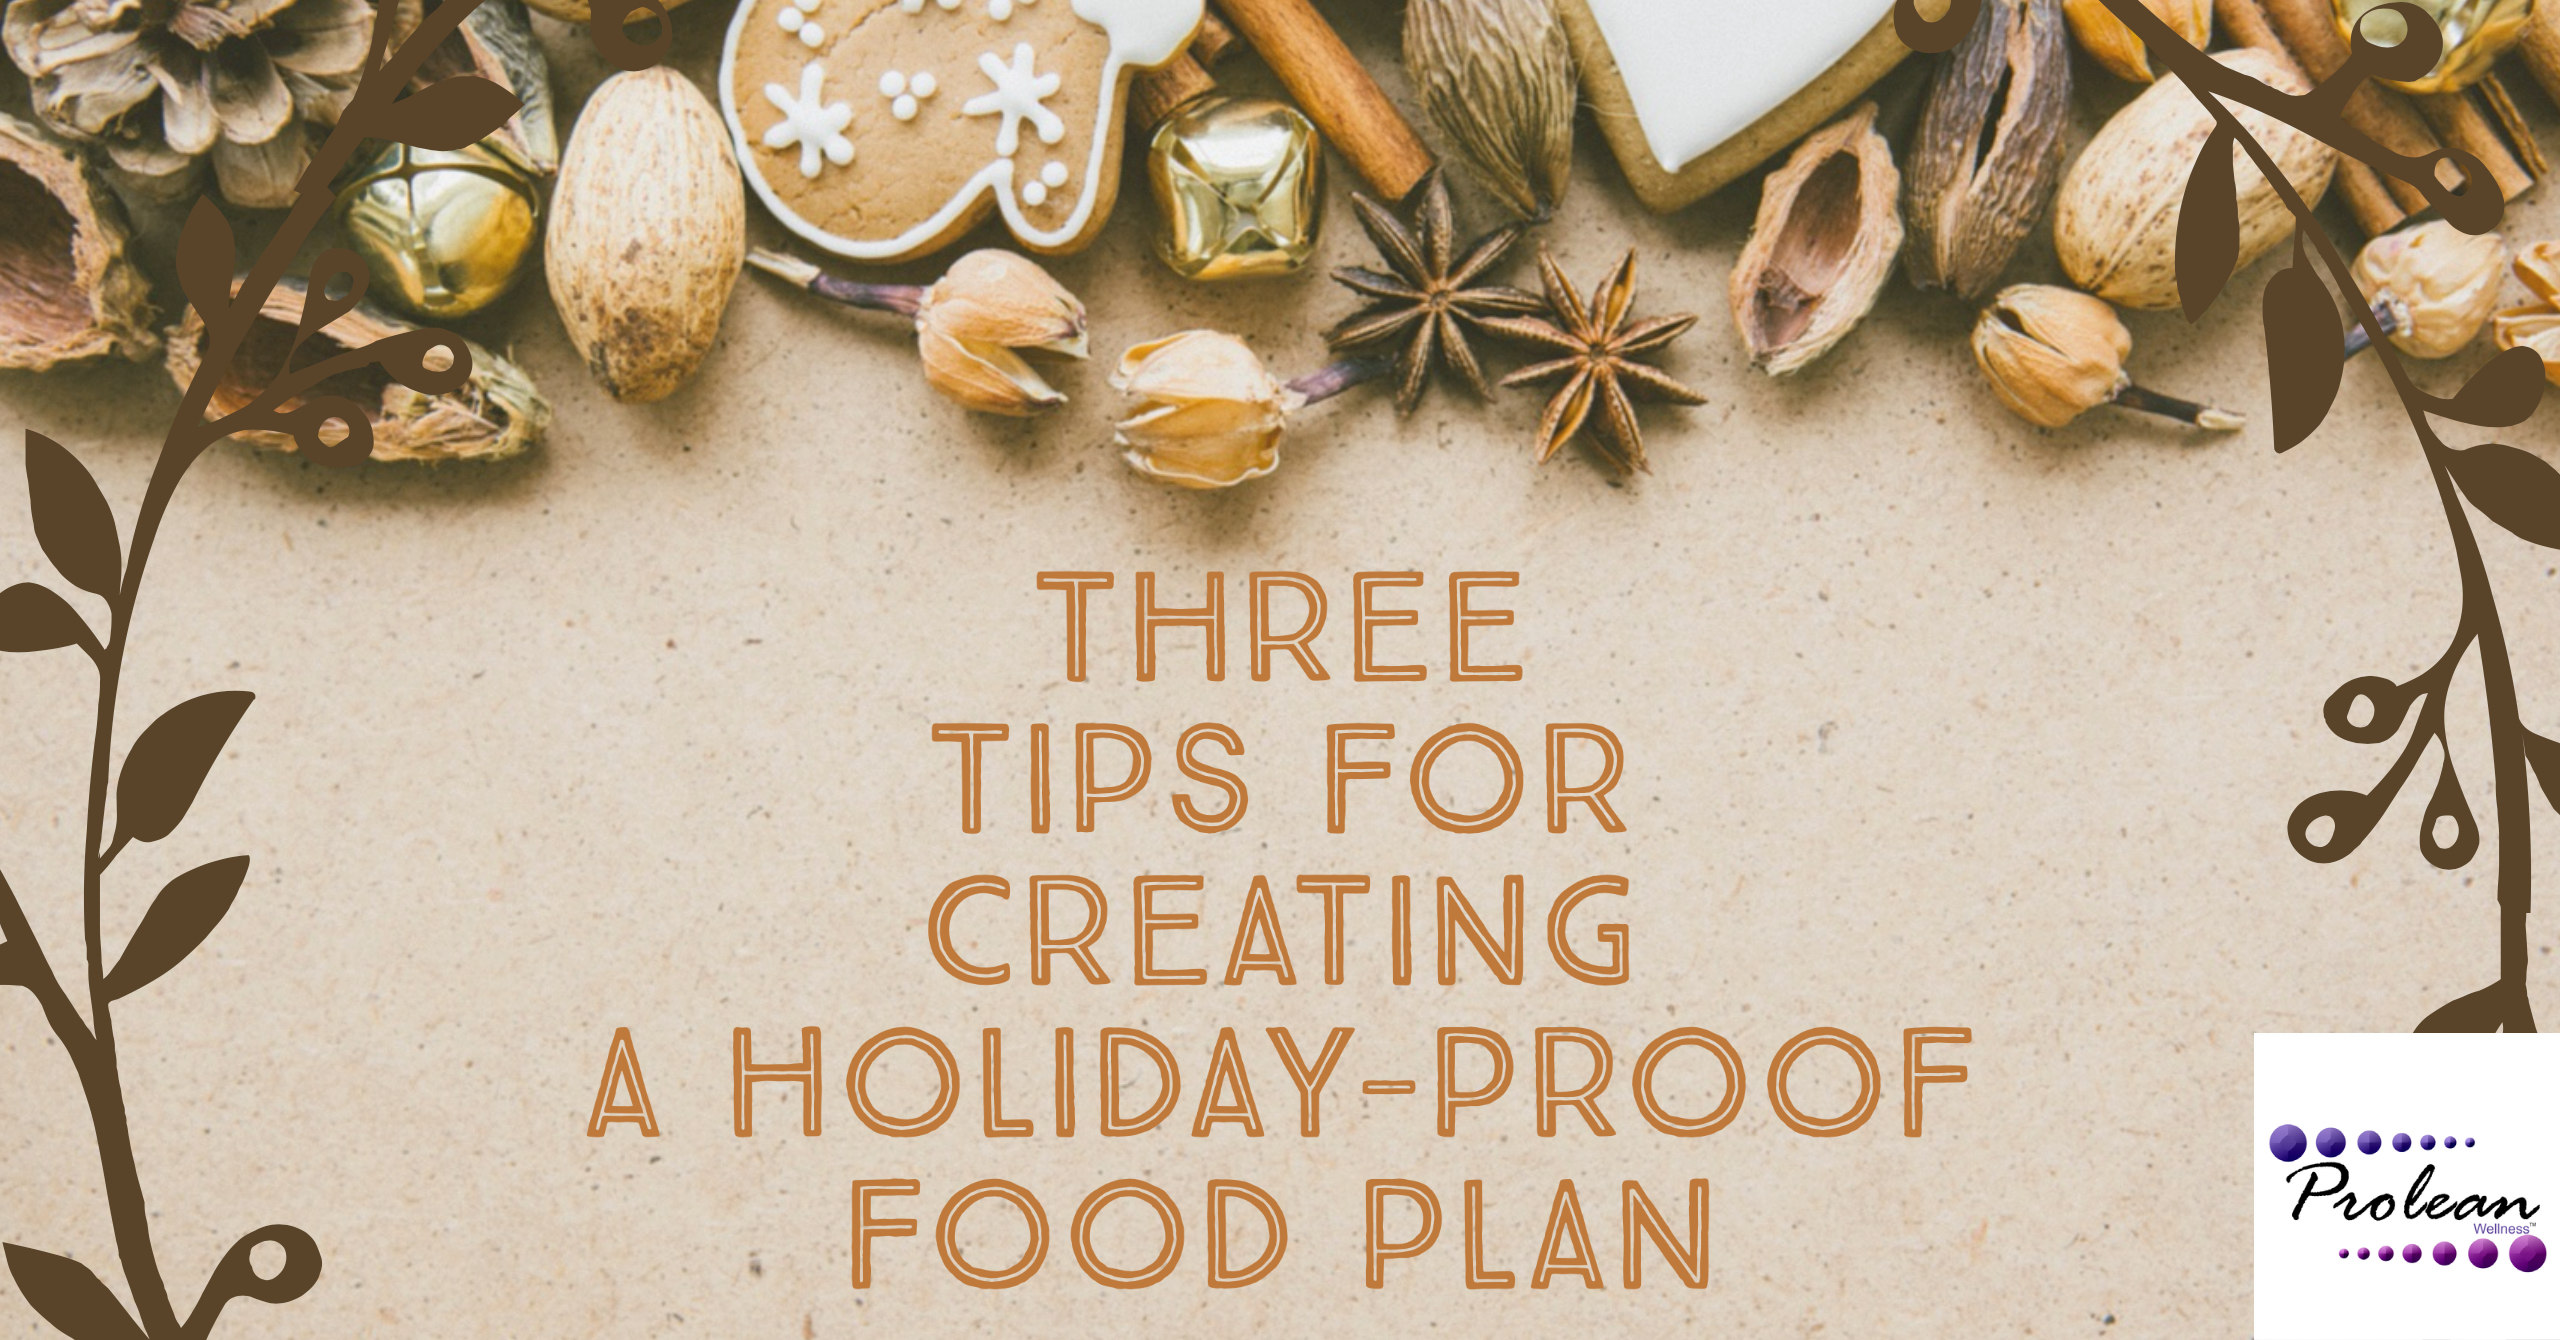 Three Tips for Creating a Holiday-Proof Food Plan